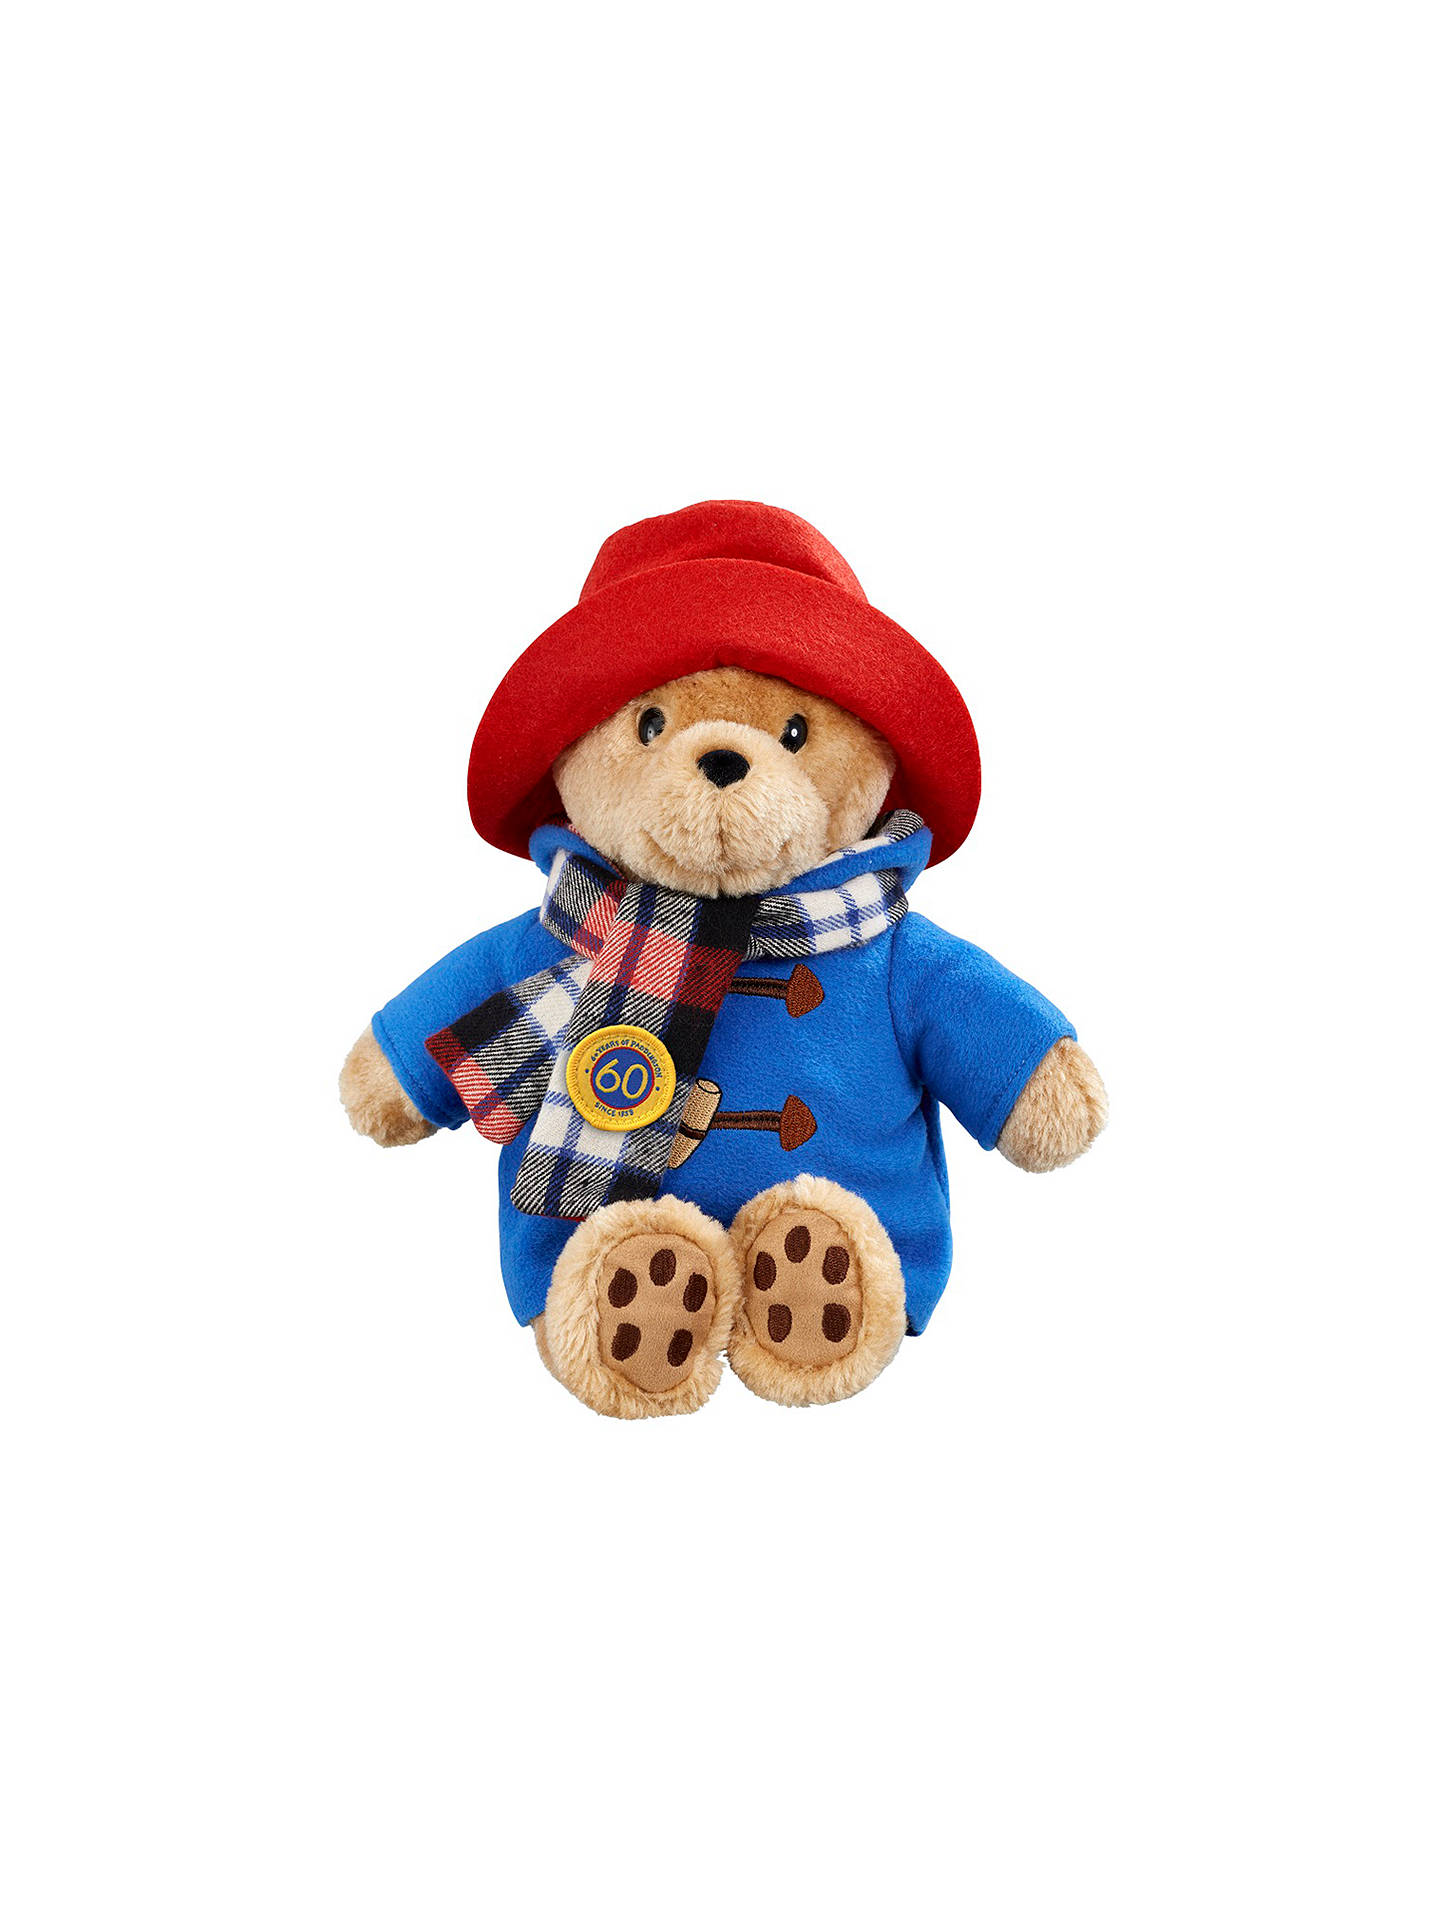 Buy Paddington Bear 60th Anniversary Padding With Scarf Soft Toy Online at johnlewis.com